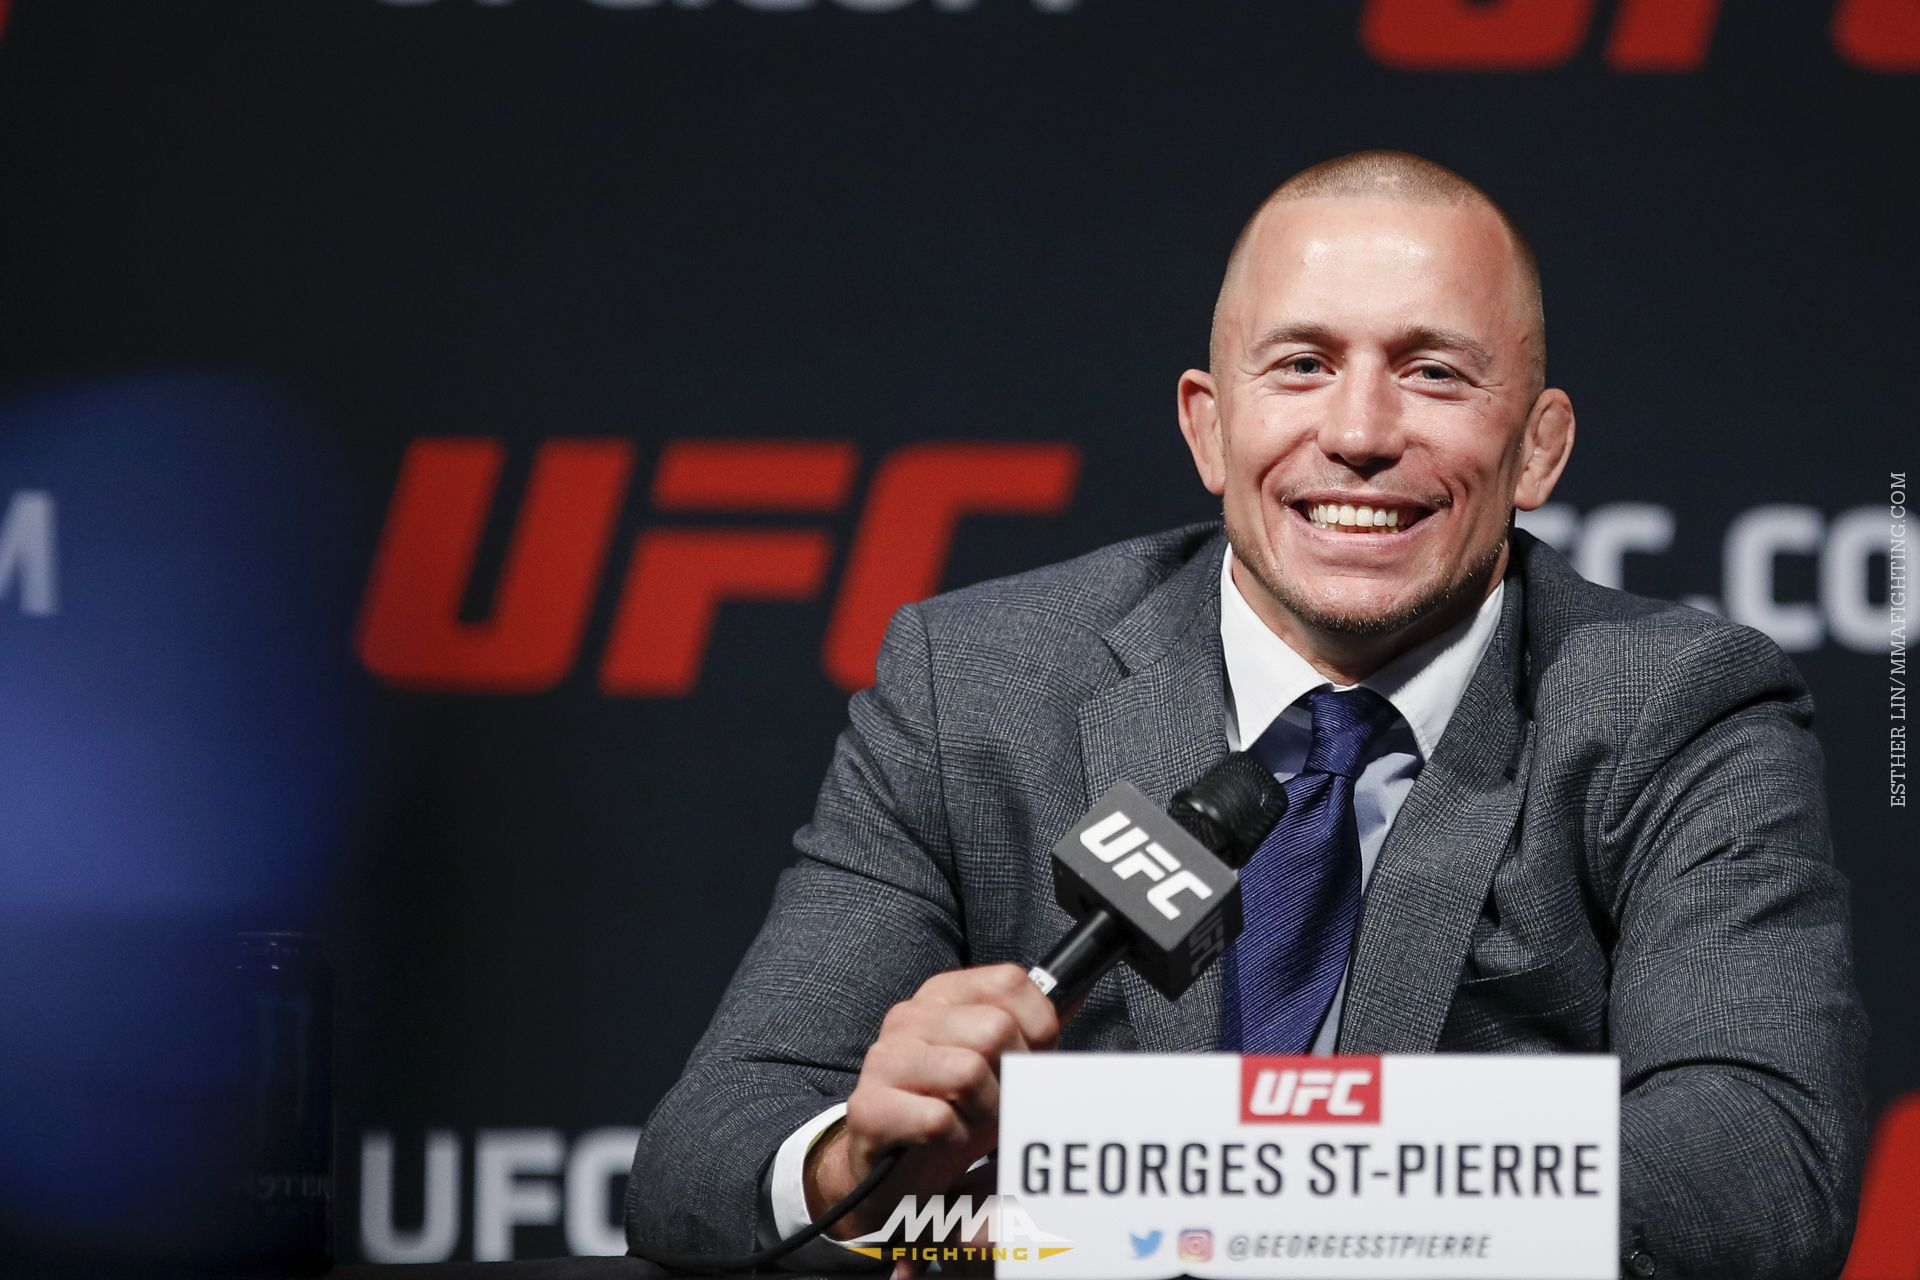 Michael Bisping vs Georges St-Pierre Press Conference